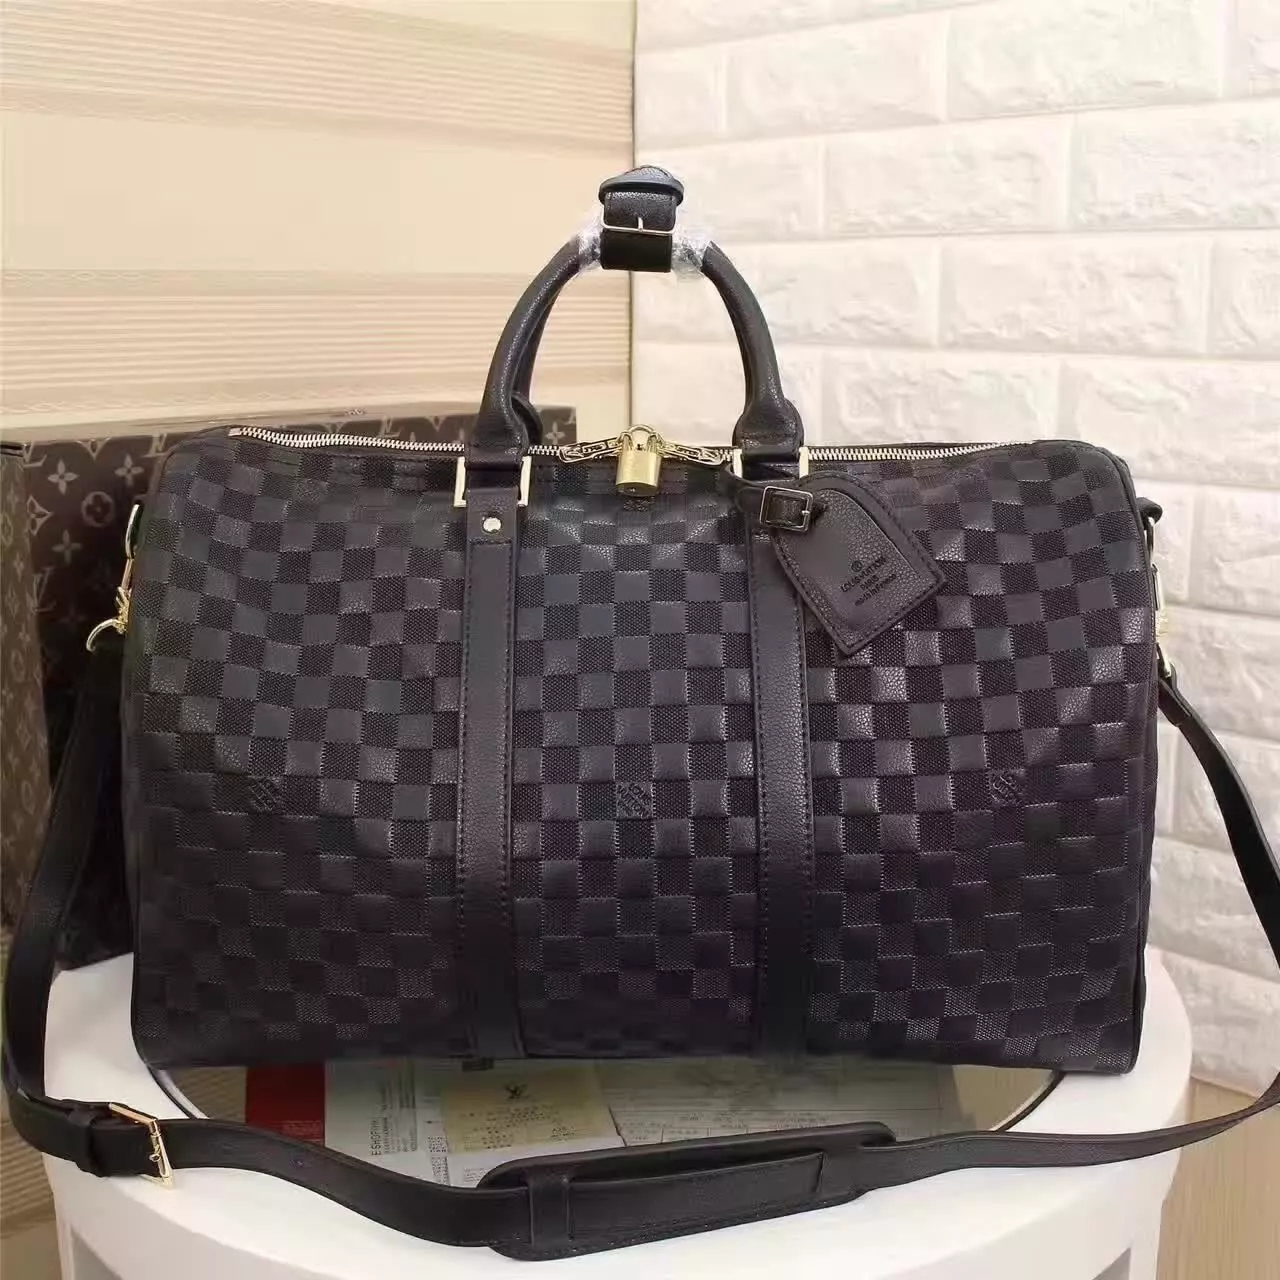 Louis Vuitton N41145 Keepall Bandoulière 45 Onyx Damier Infini Leather Travel Bags